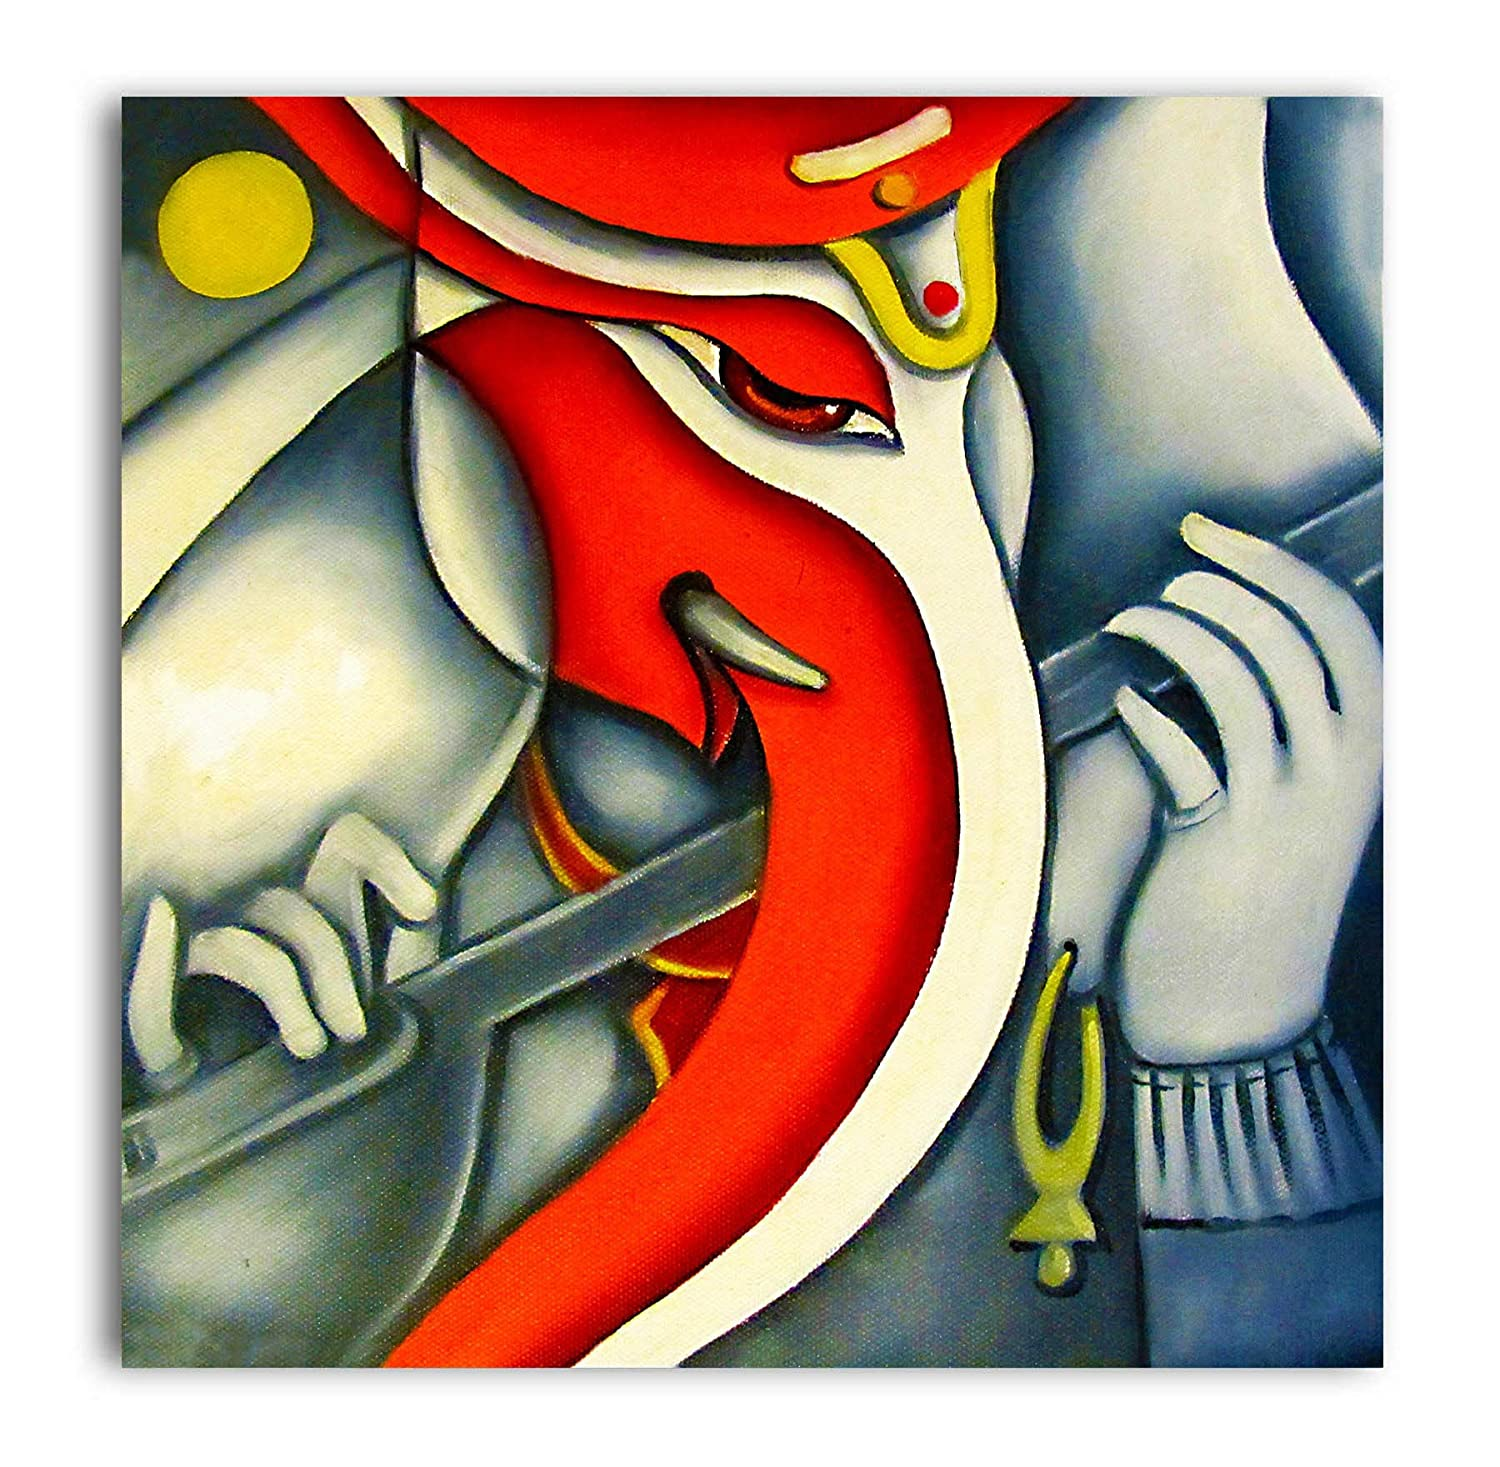 Tamatina Canvas Paintings Simple Ganesh Lord Ganesha Paintings Modern Art Paintings Paintings For Home Decor Paintings For Bedroom Paintings For Living Room Religious Canvas Paintings